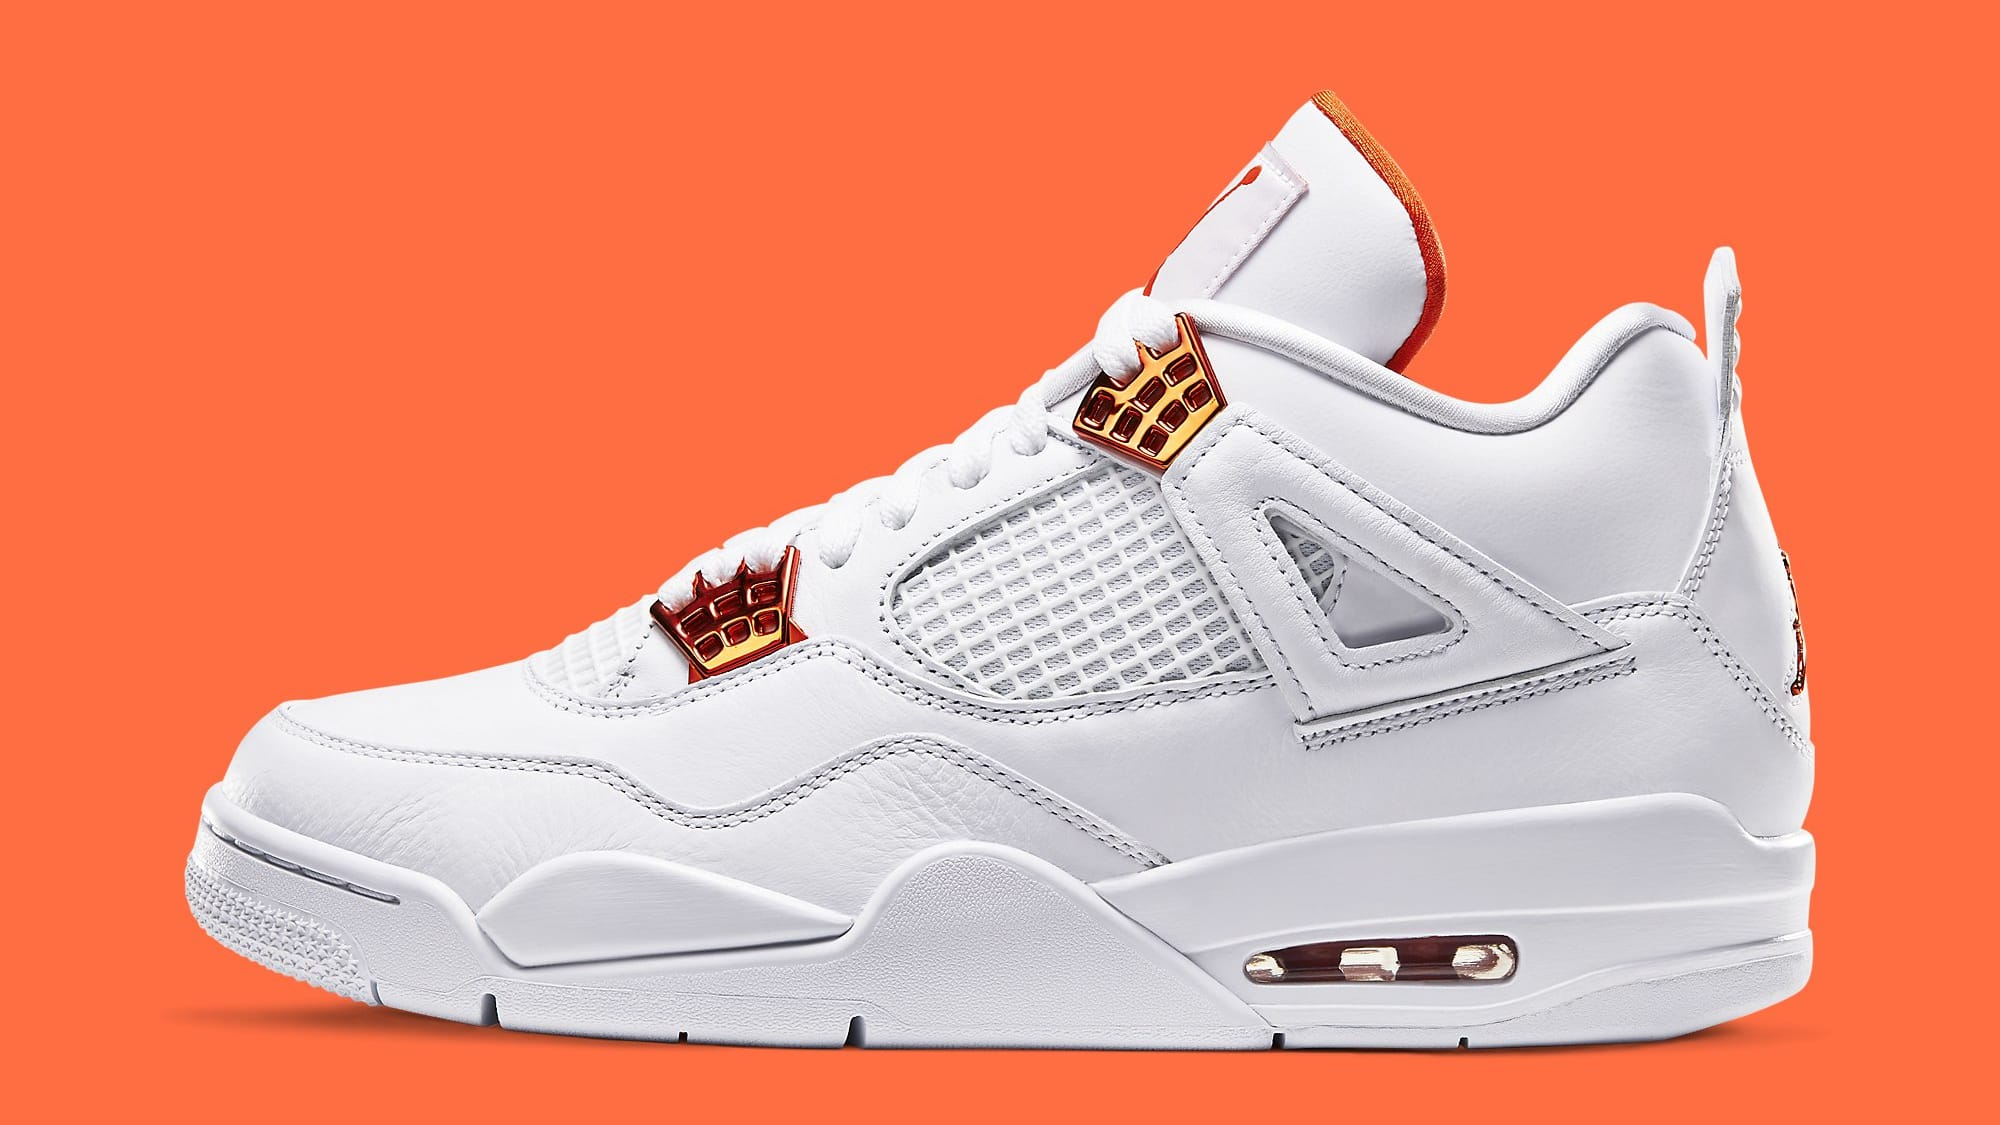 Air Jordan 4 Metallic Orange Release Date CT8527-118 Profile